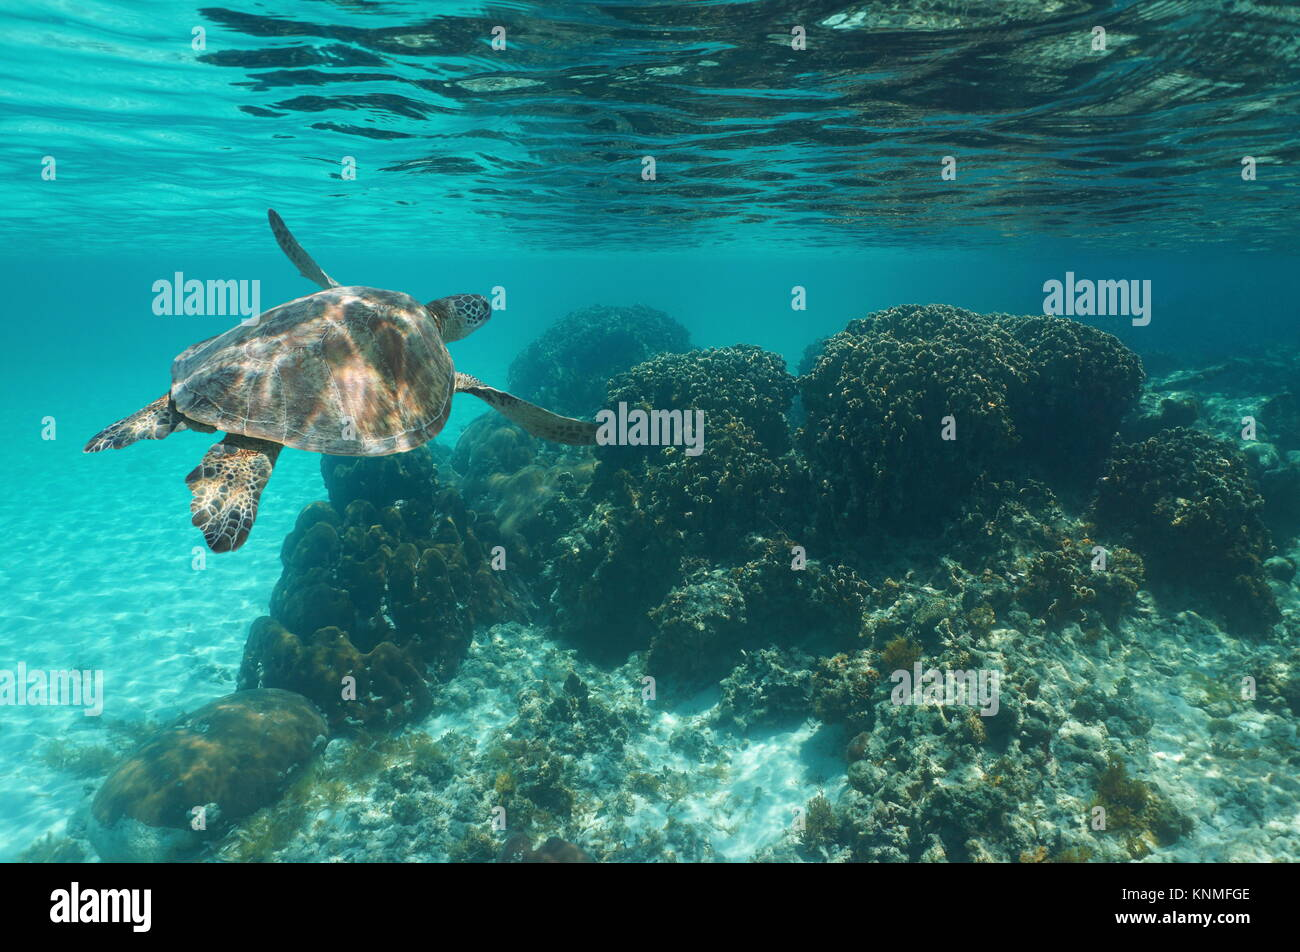 Underwater a green sea turtle Chelonia mydas over a coral reef, Caribbean sea - Stock Image